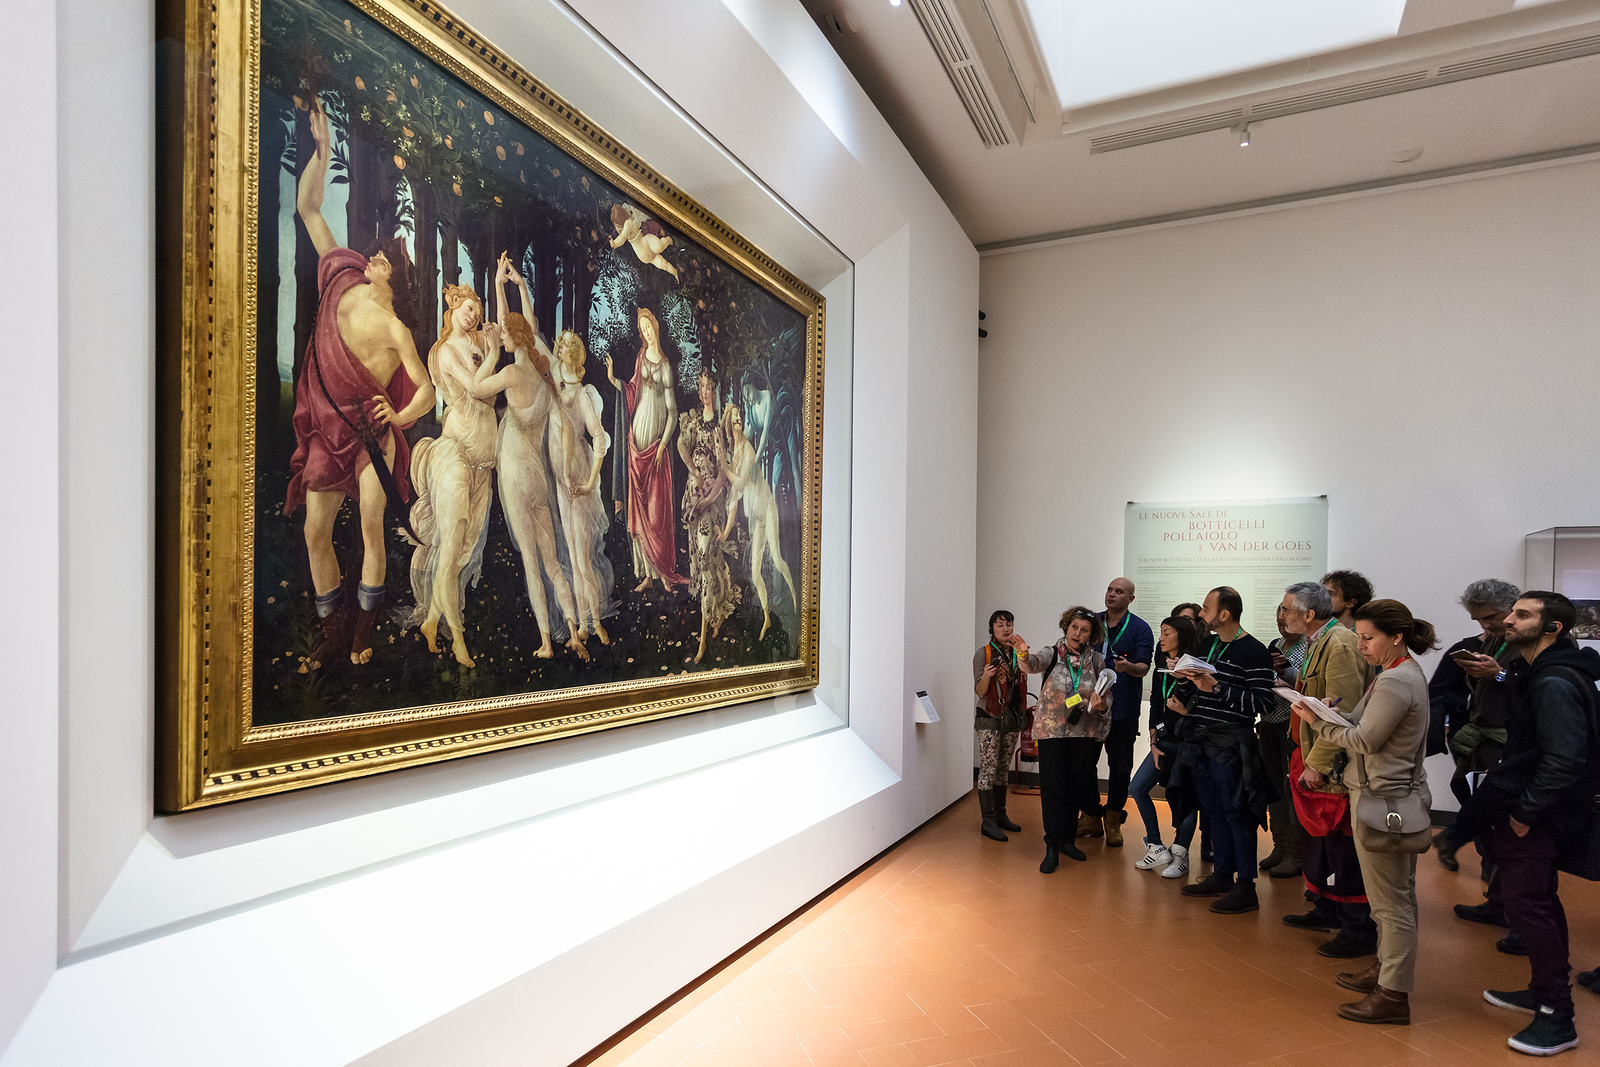 Visitors In Botticelli Hall Of Uffizi Gallery